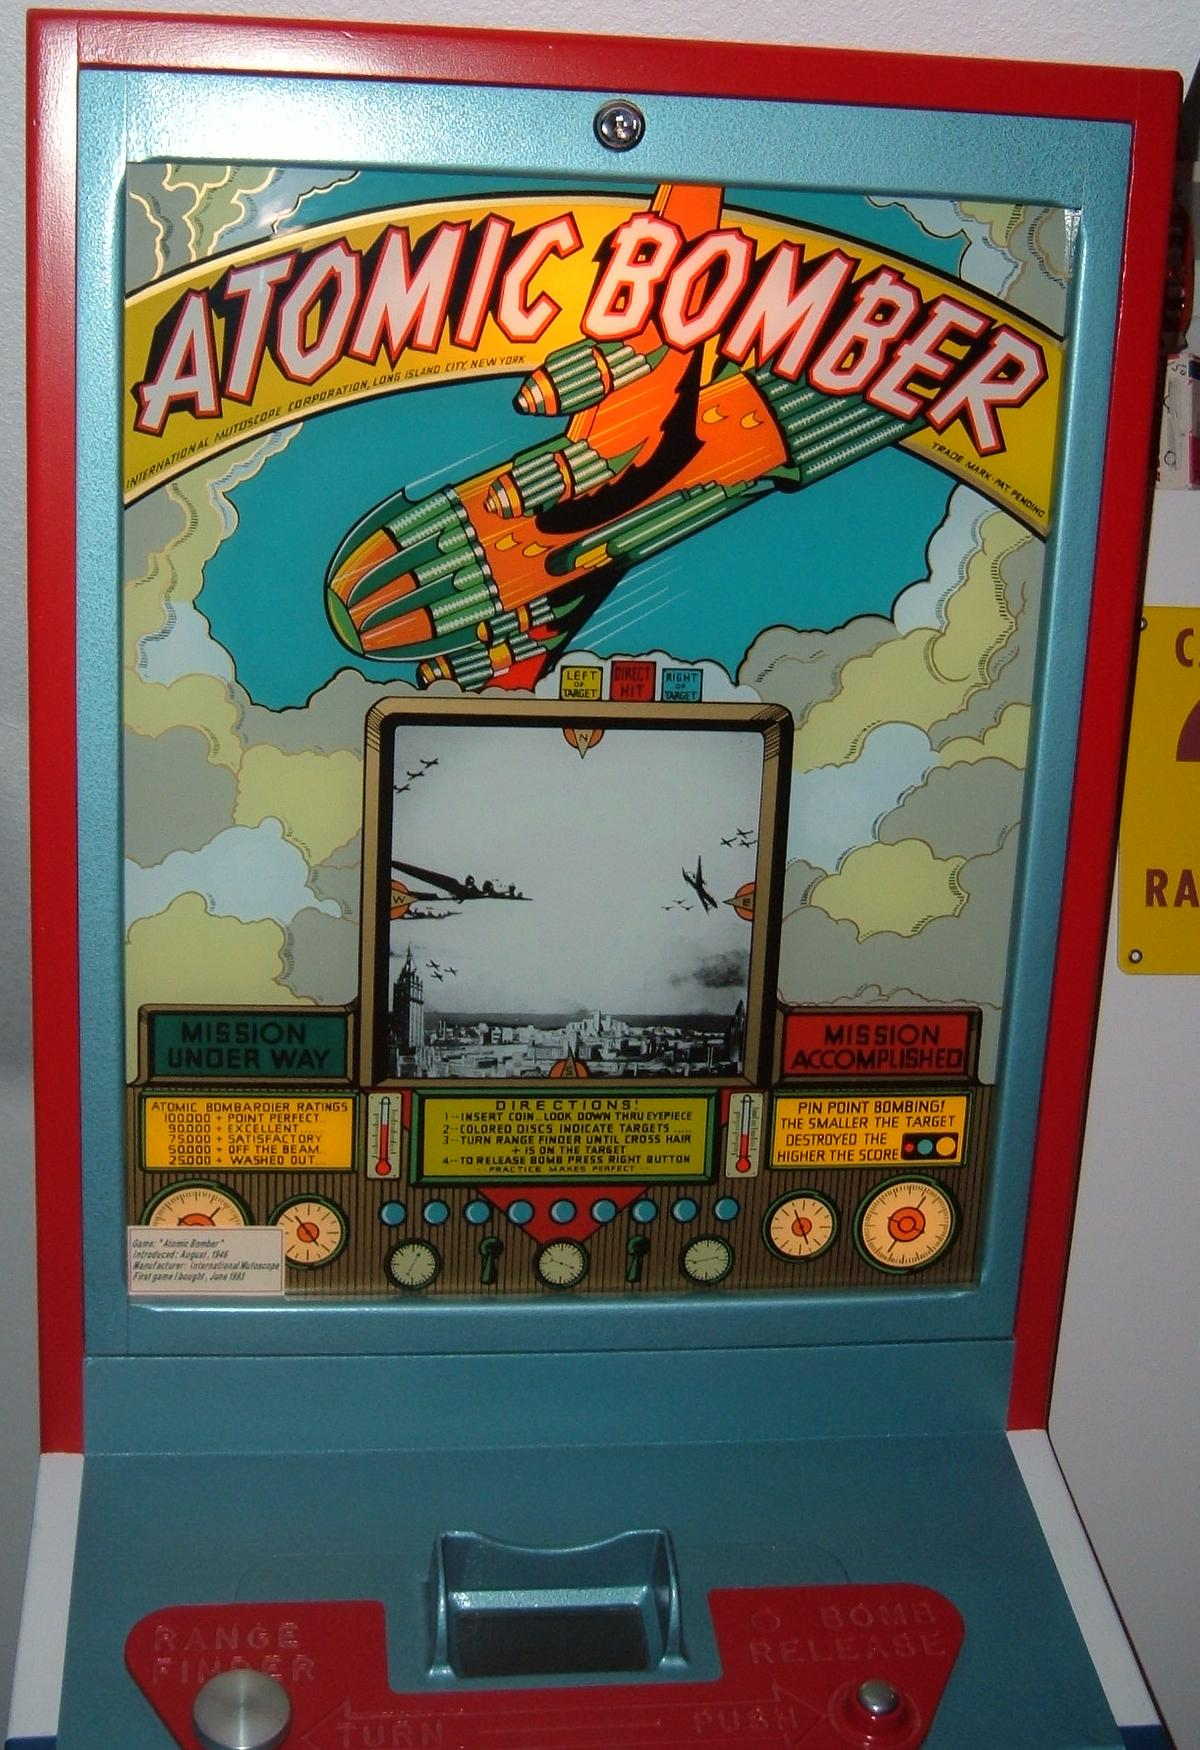 Player view of Atomic Bomber arcade game